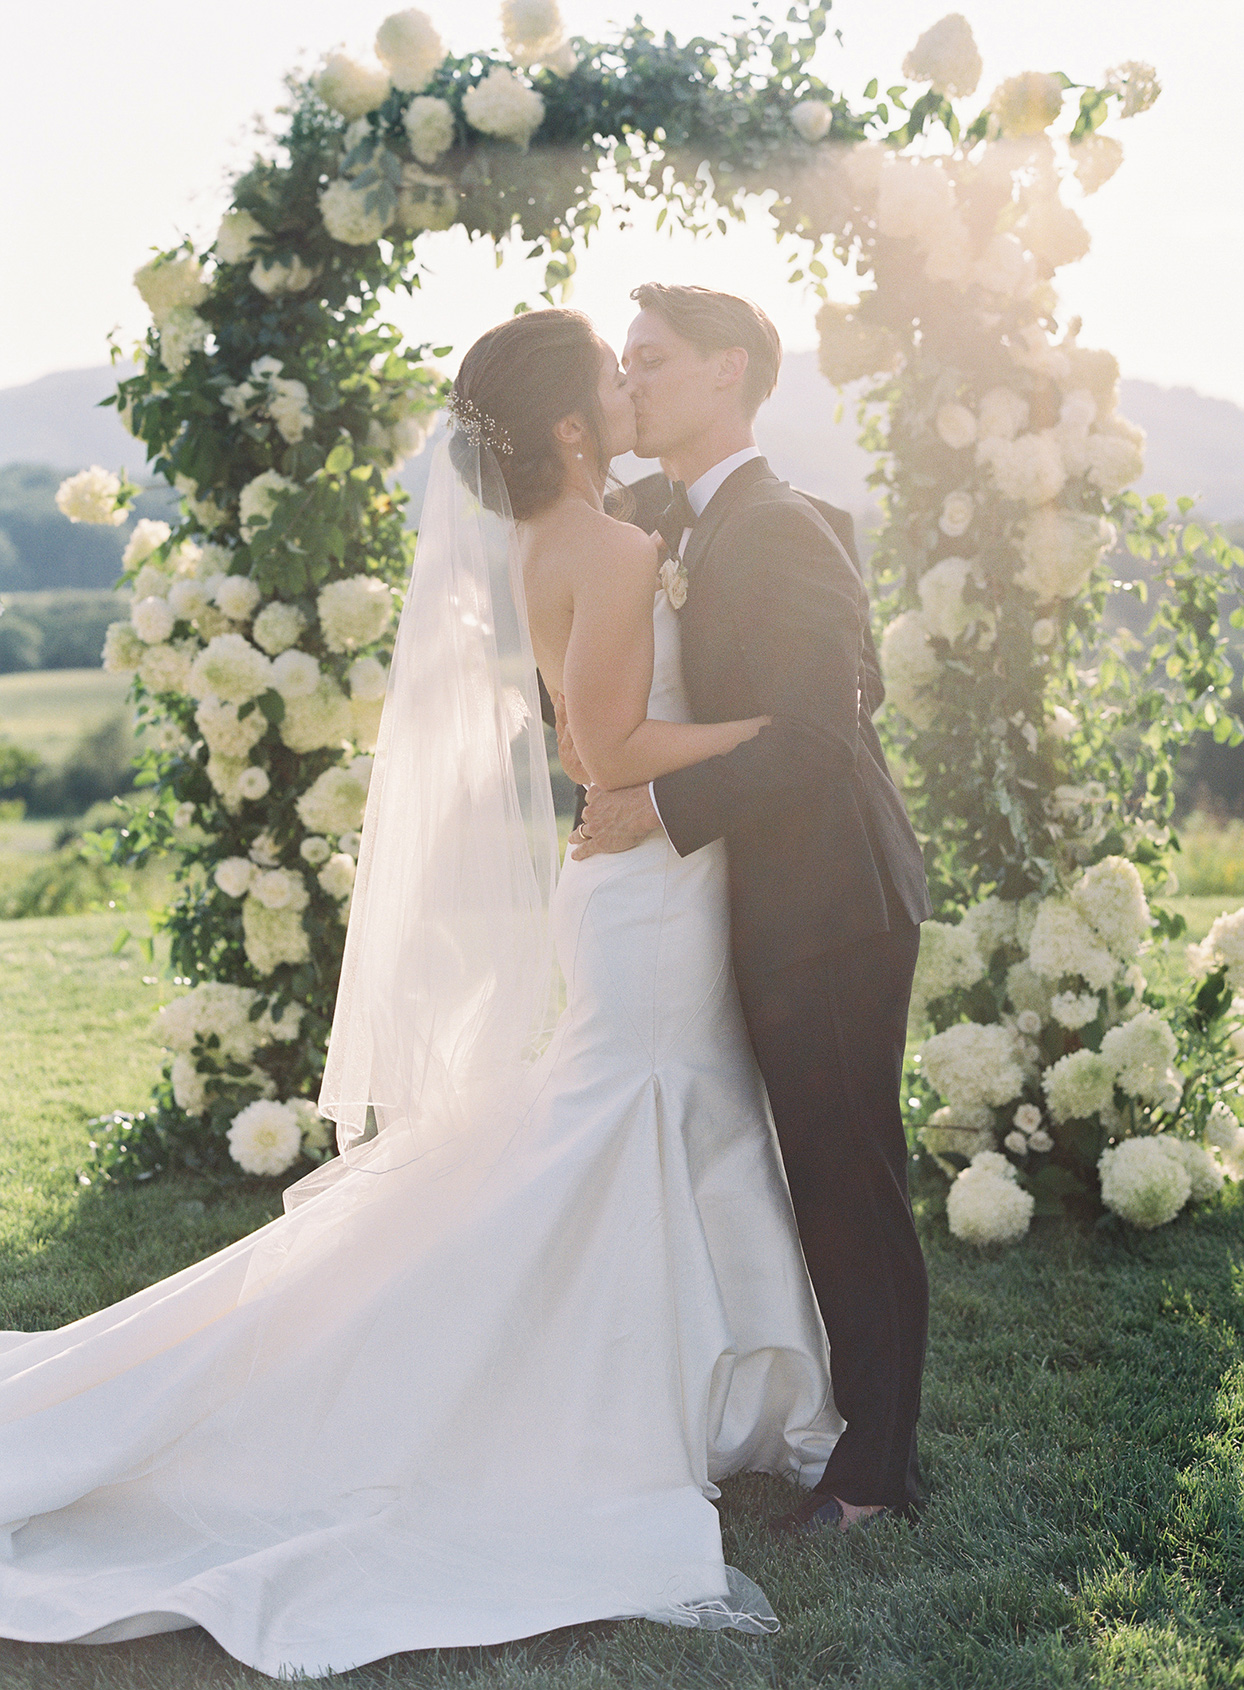 wedding couple kissing at ceremony after vows